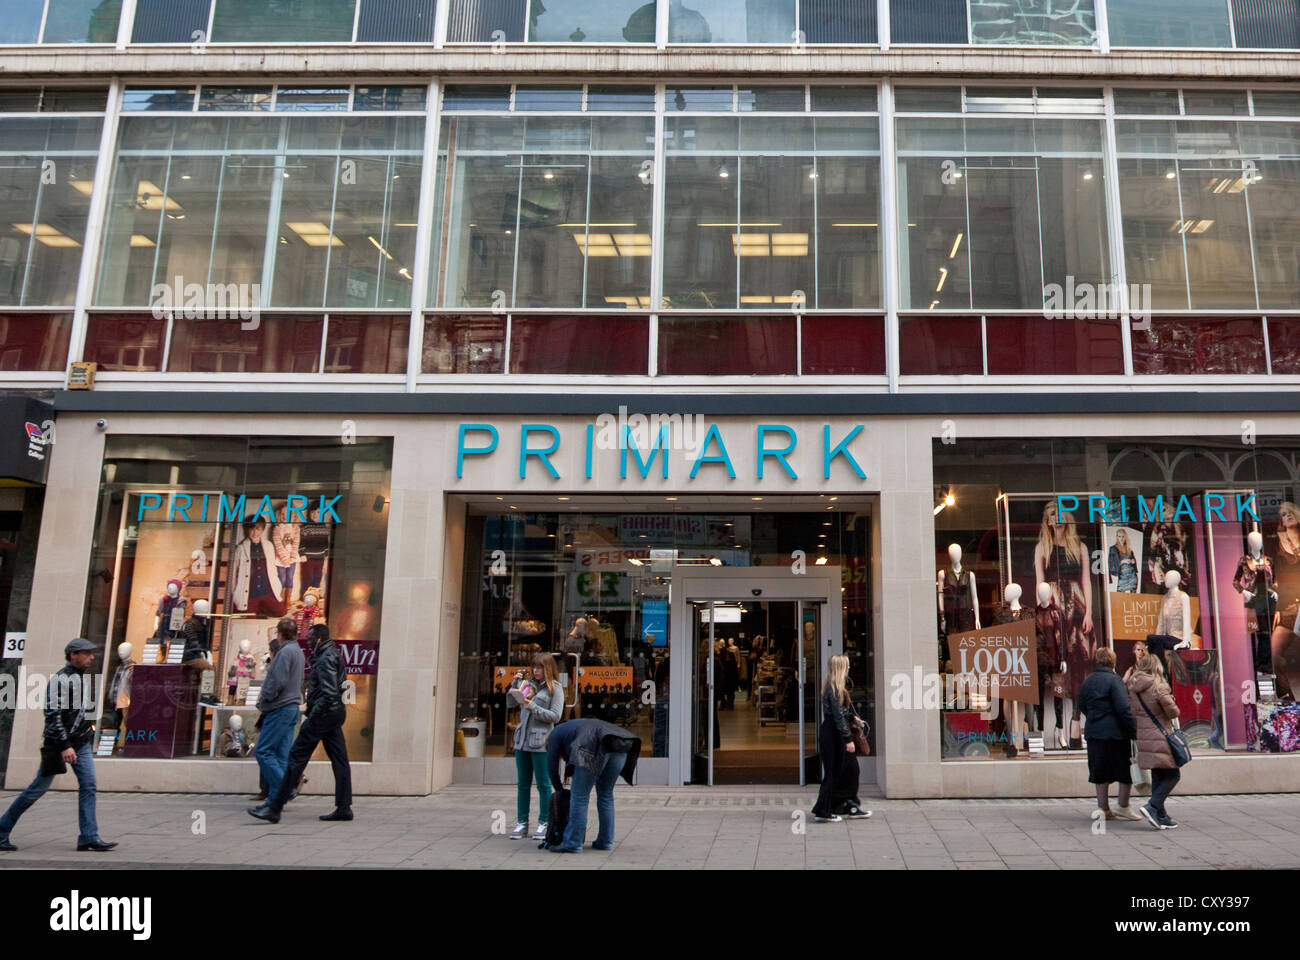 new primark flagship store in oxford street london stock photo royalty free image 50997107. Black Bedroom Furniture Sets. Home Design Ideas